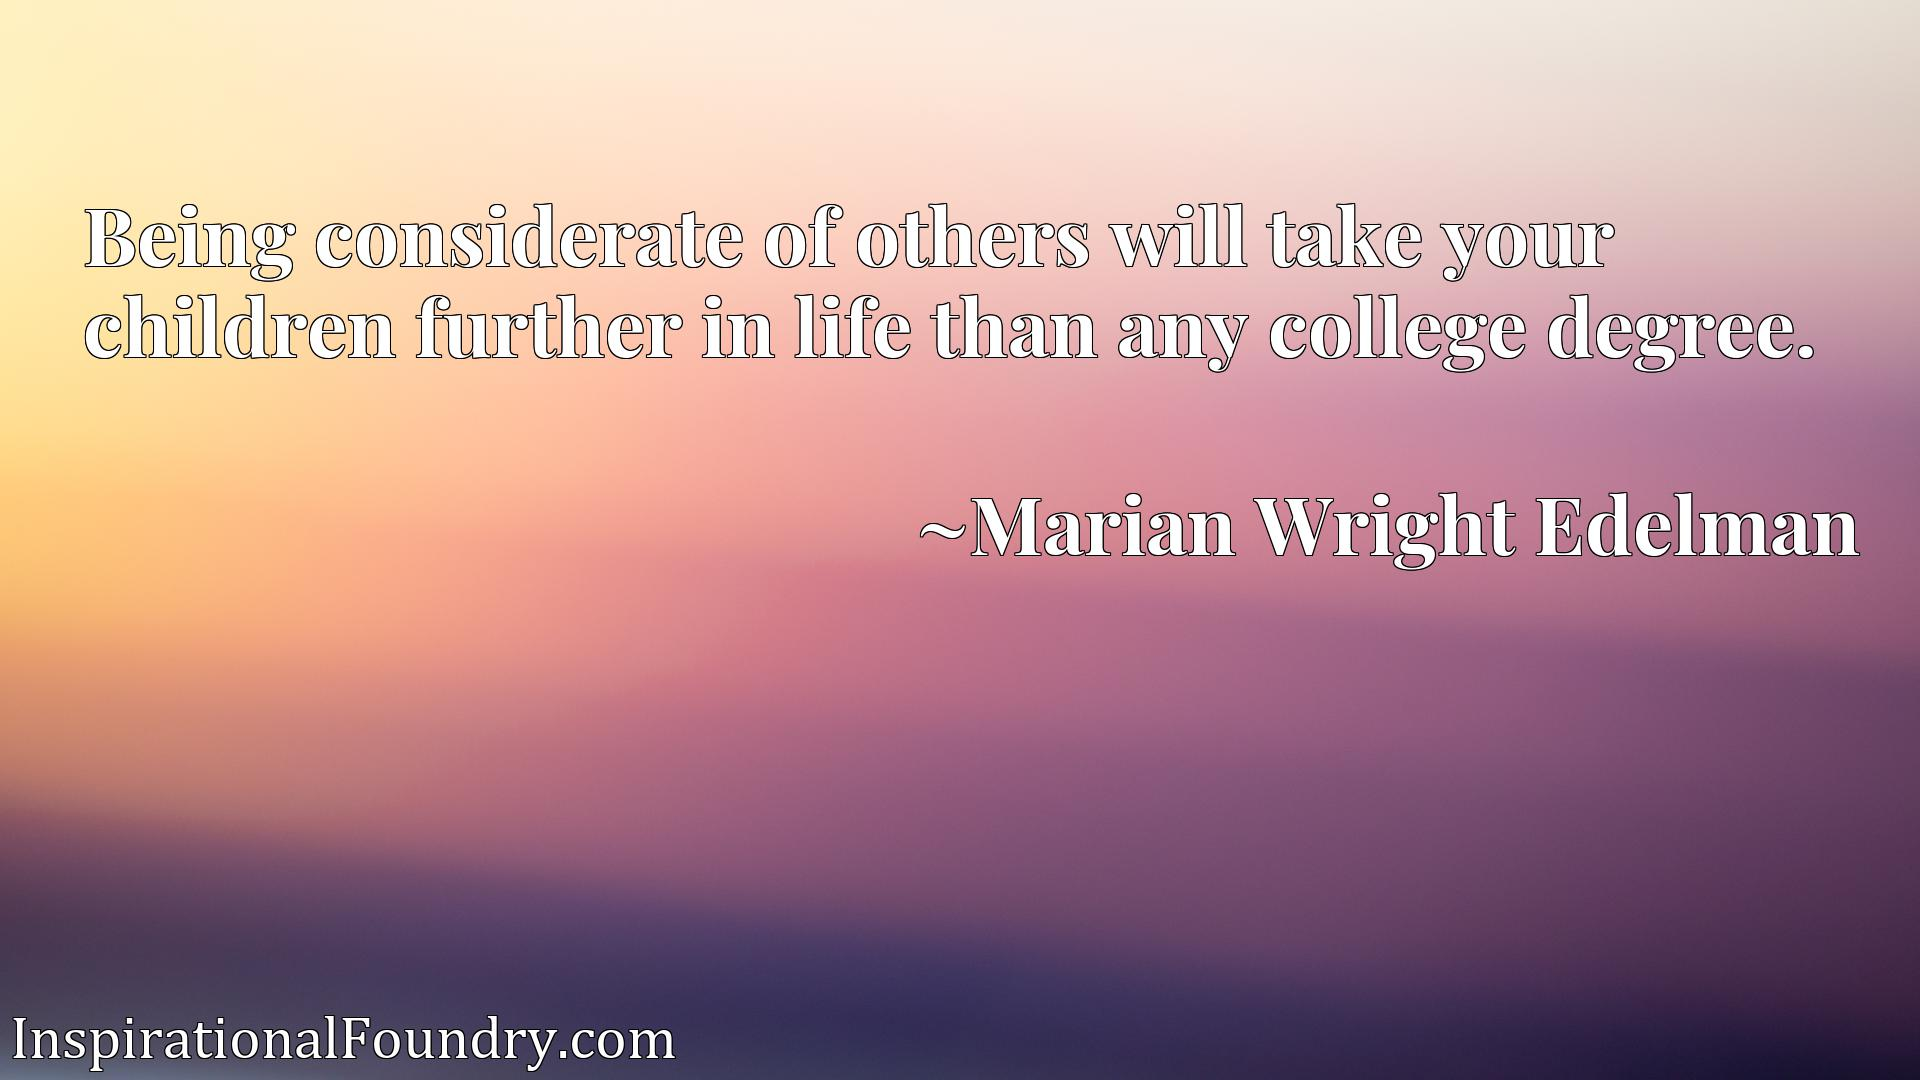 Being considerate of others will take your children further in life than any college degree.